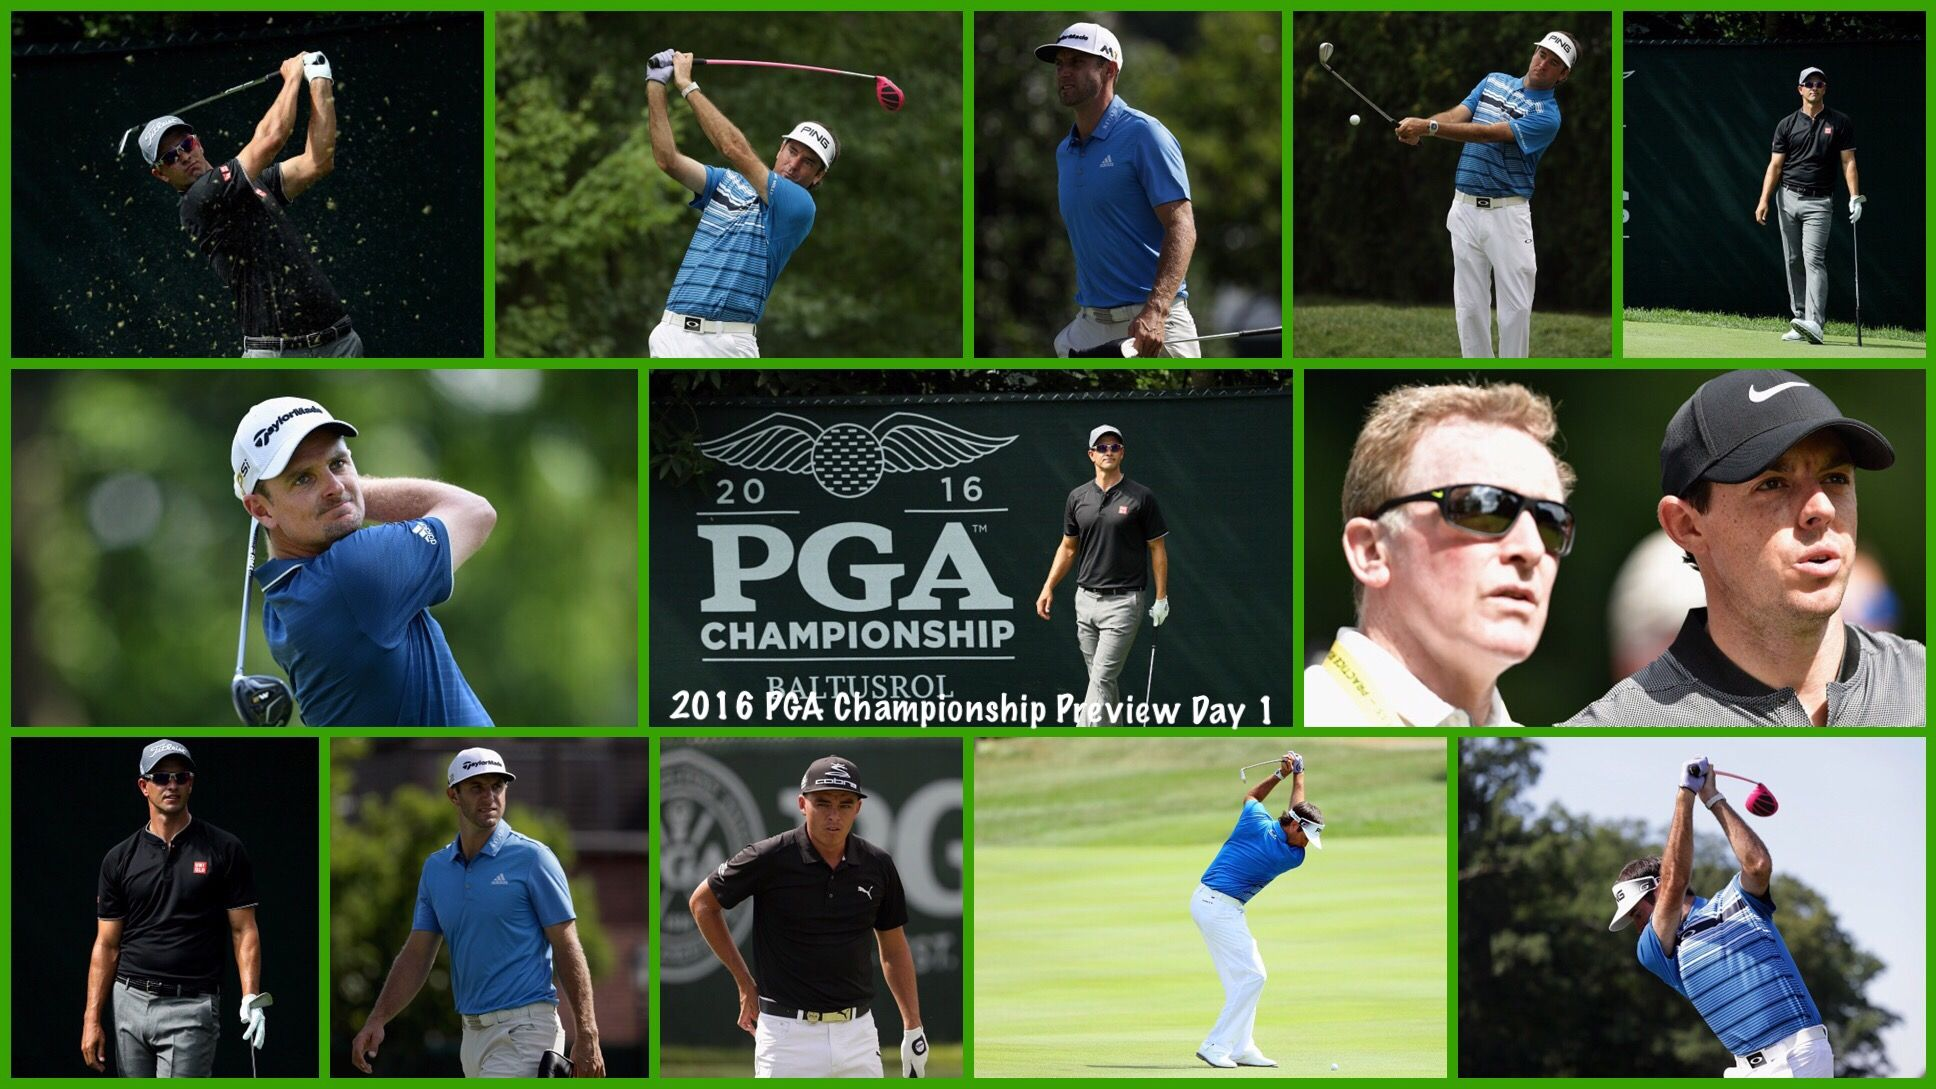 PGA Championship Preview Day one